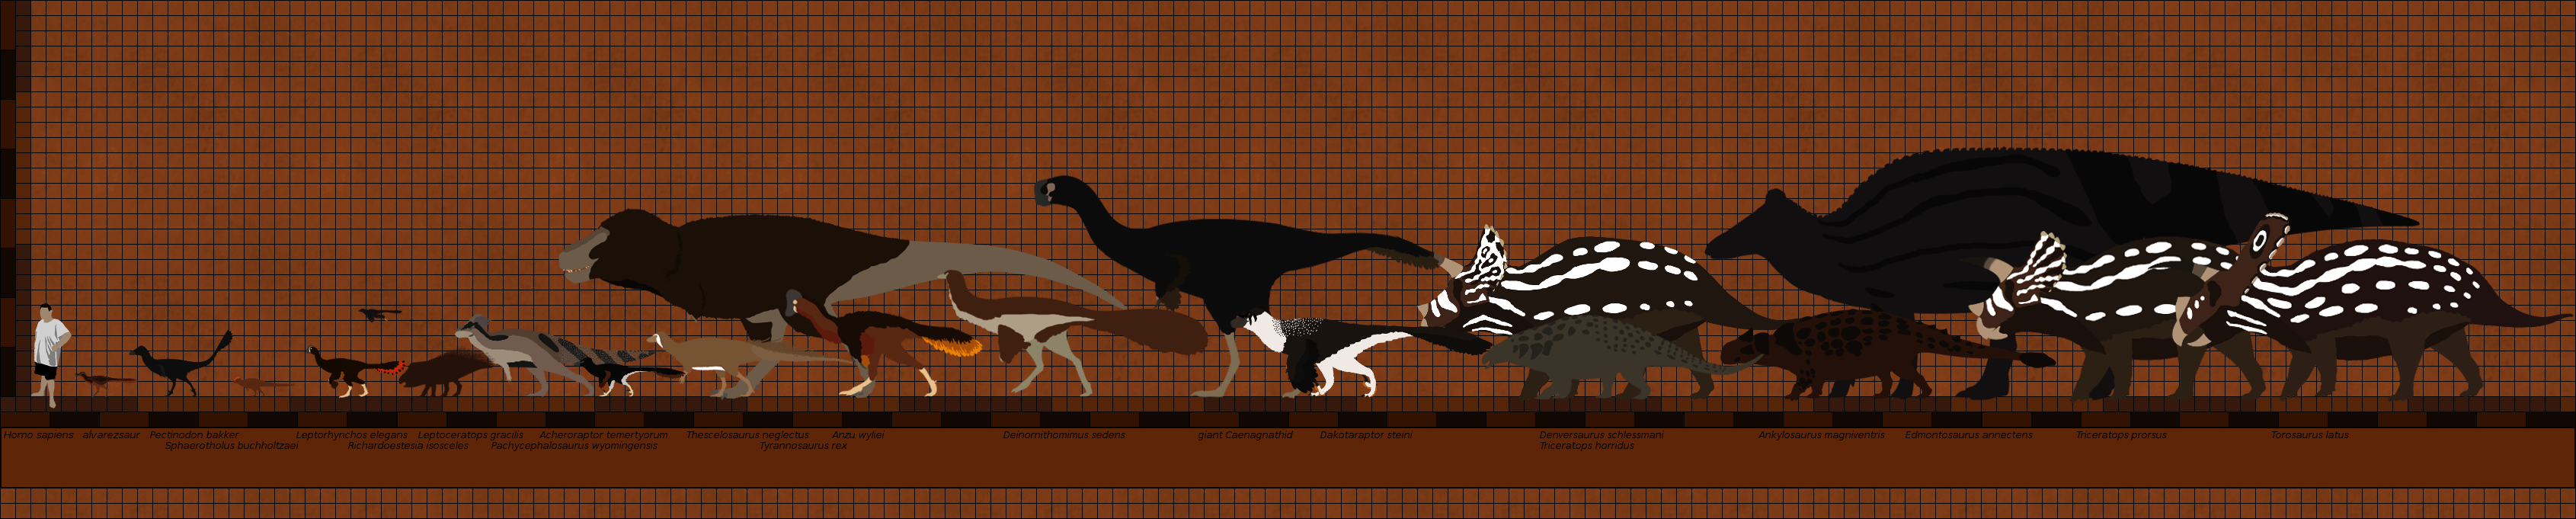 hell_creek_dinosaurs_revised_revised_revised_by_paleop-d9rt1ud.png